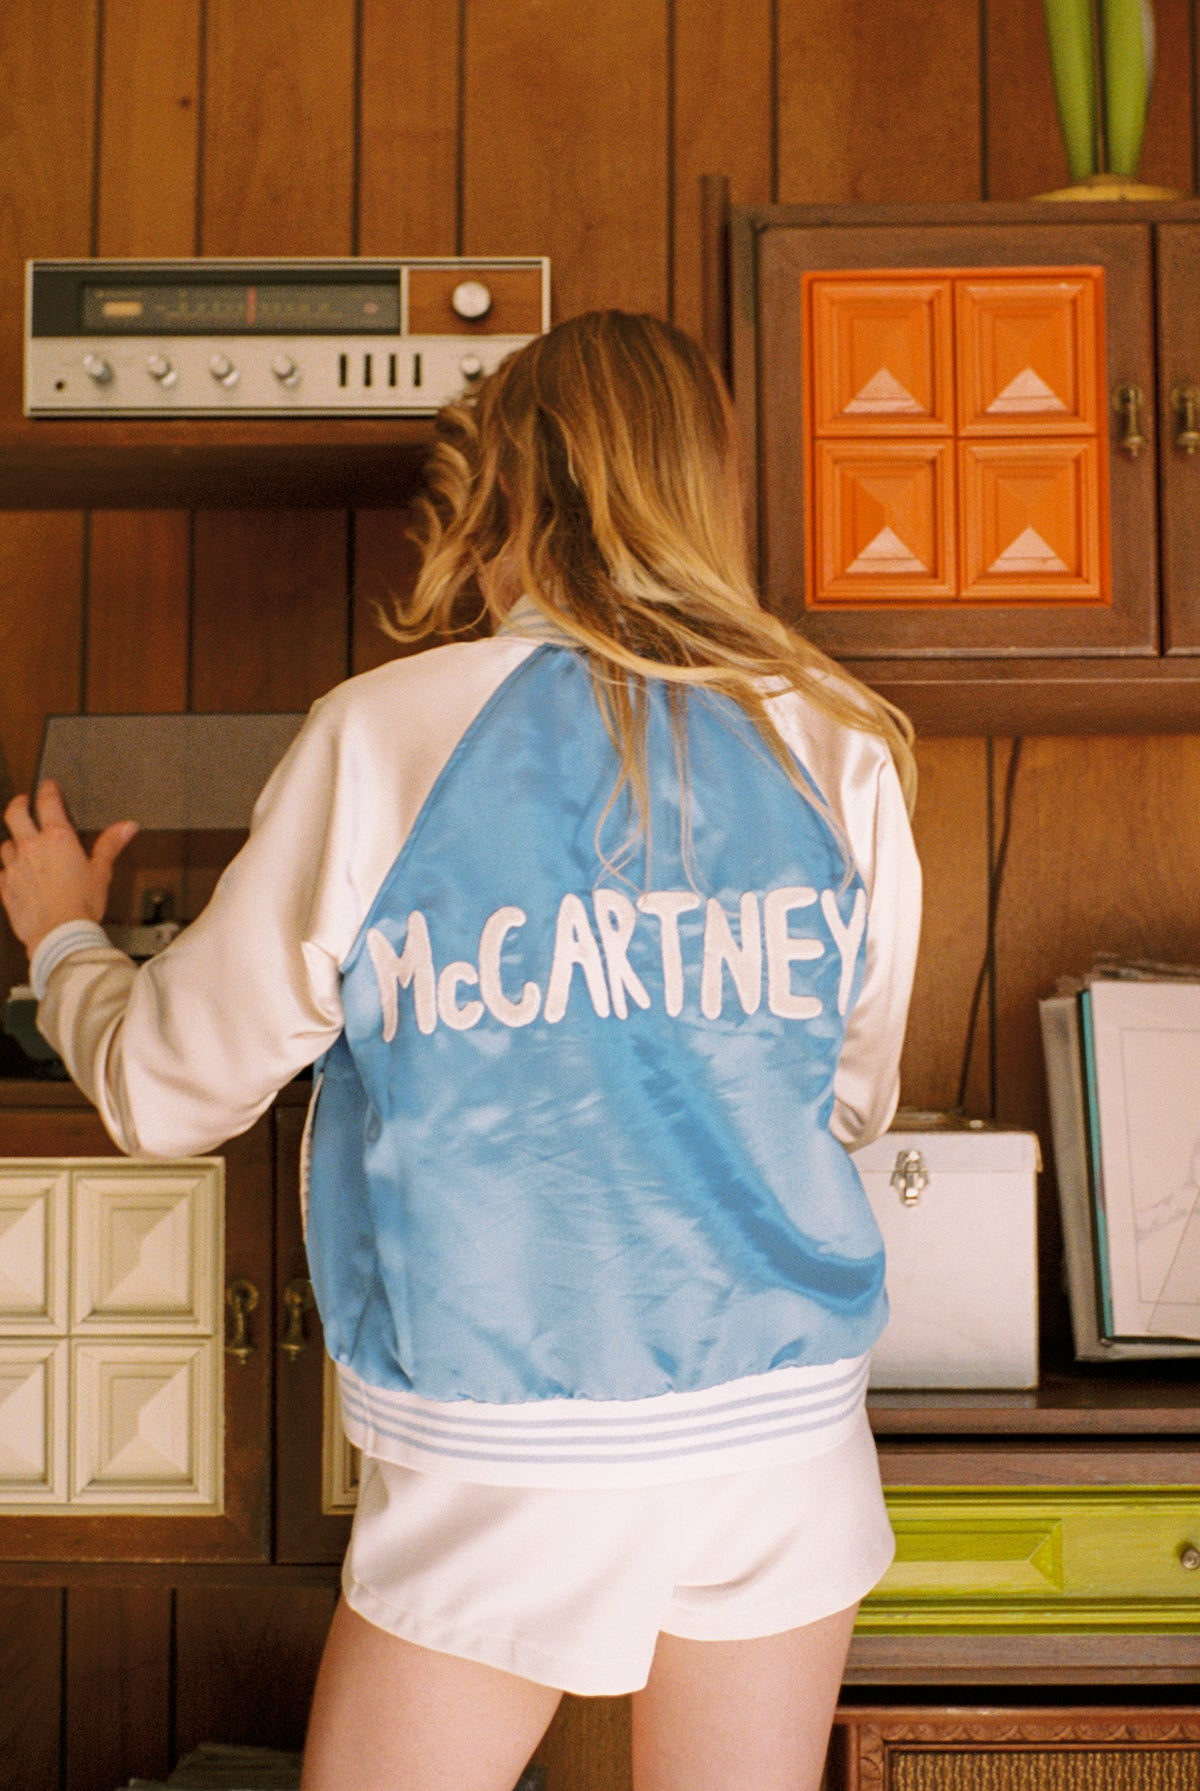 The McCartney Satin Jacket